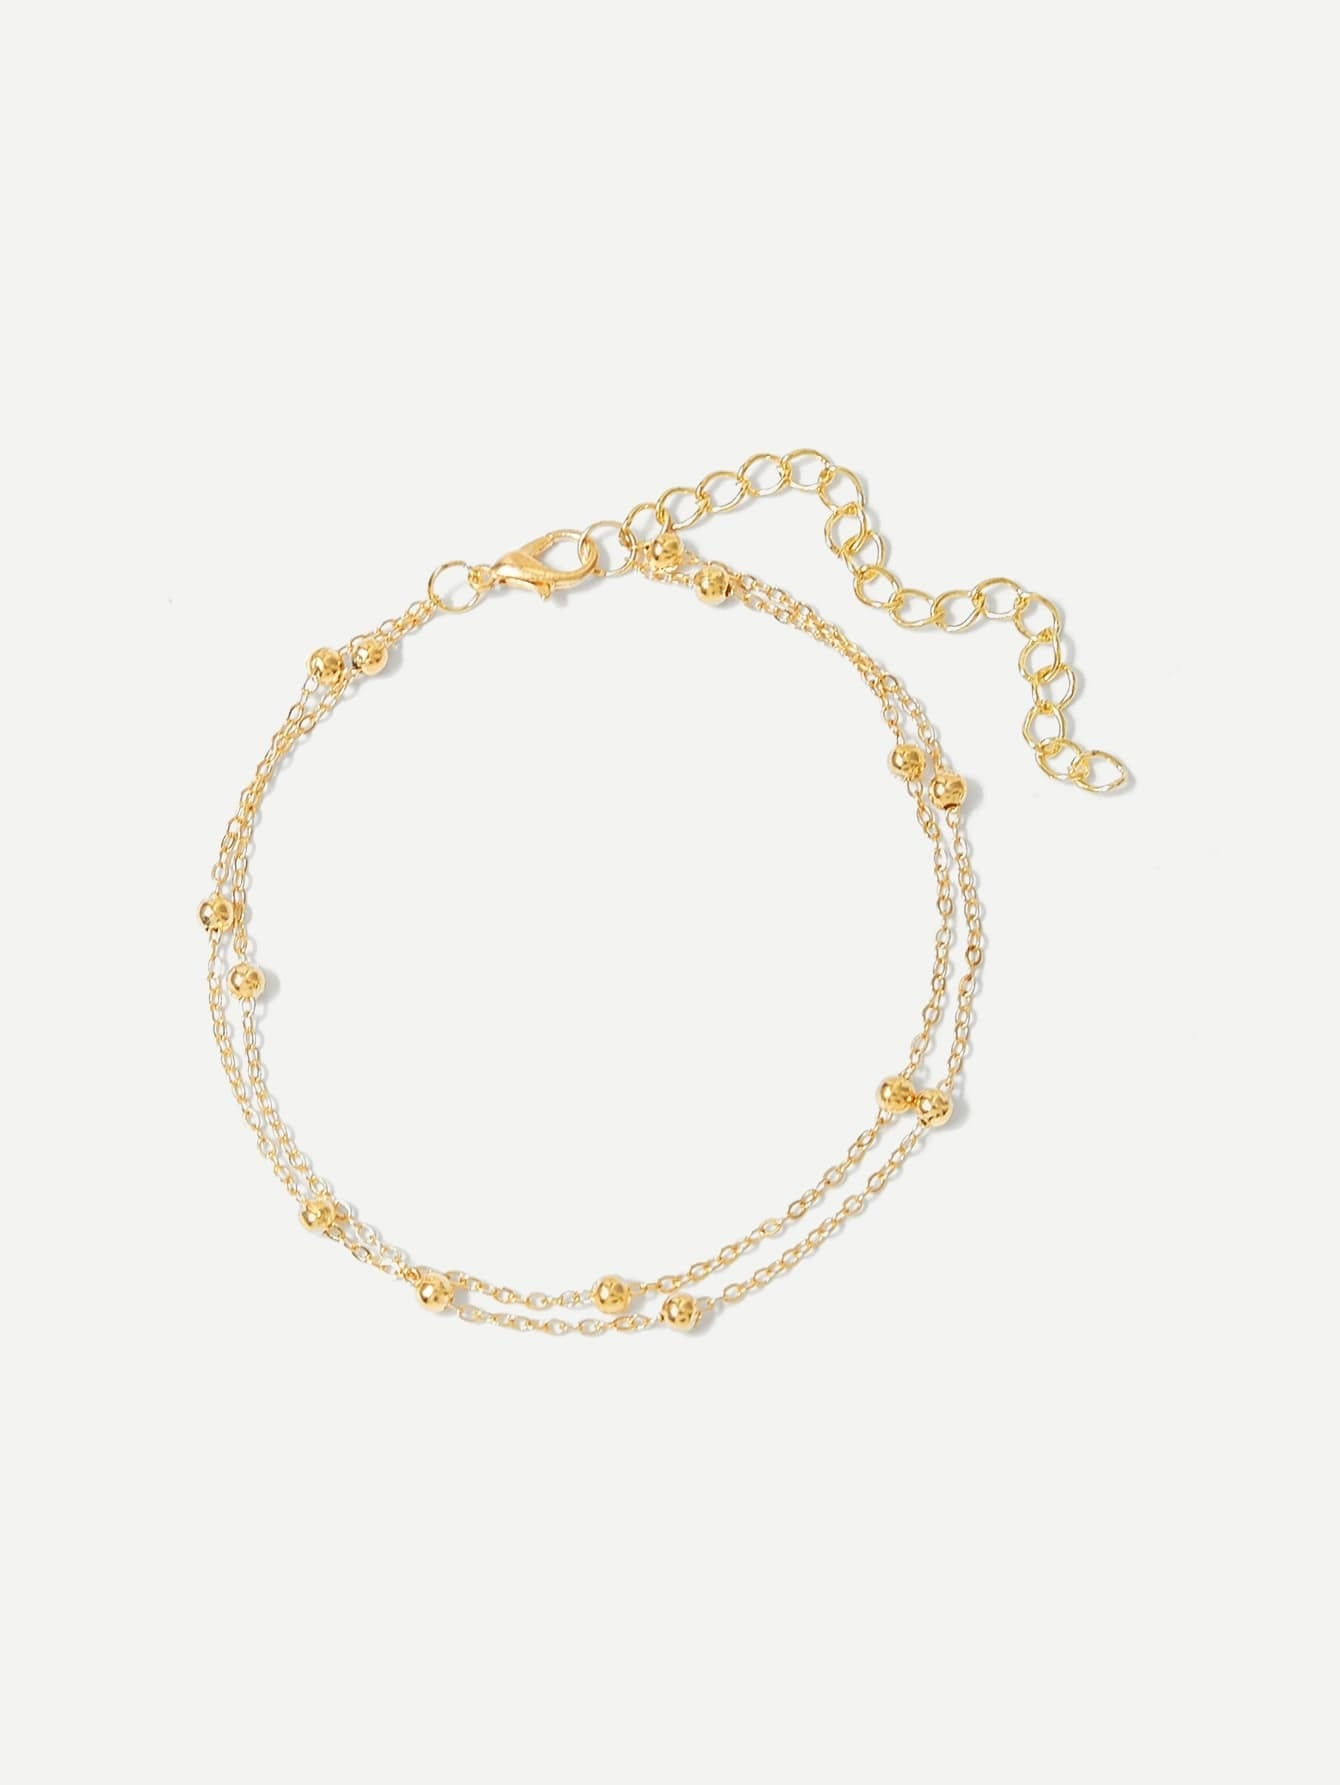 Golden And Silver Layered Chain Ball Detail Metal Anklet